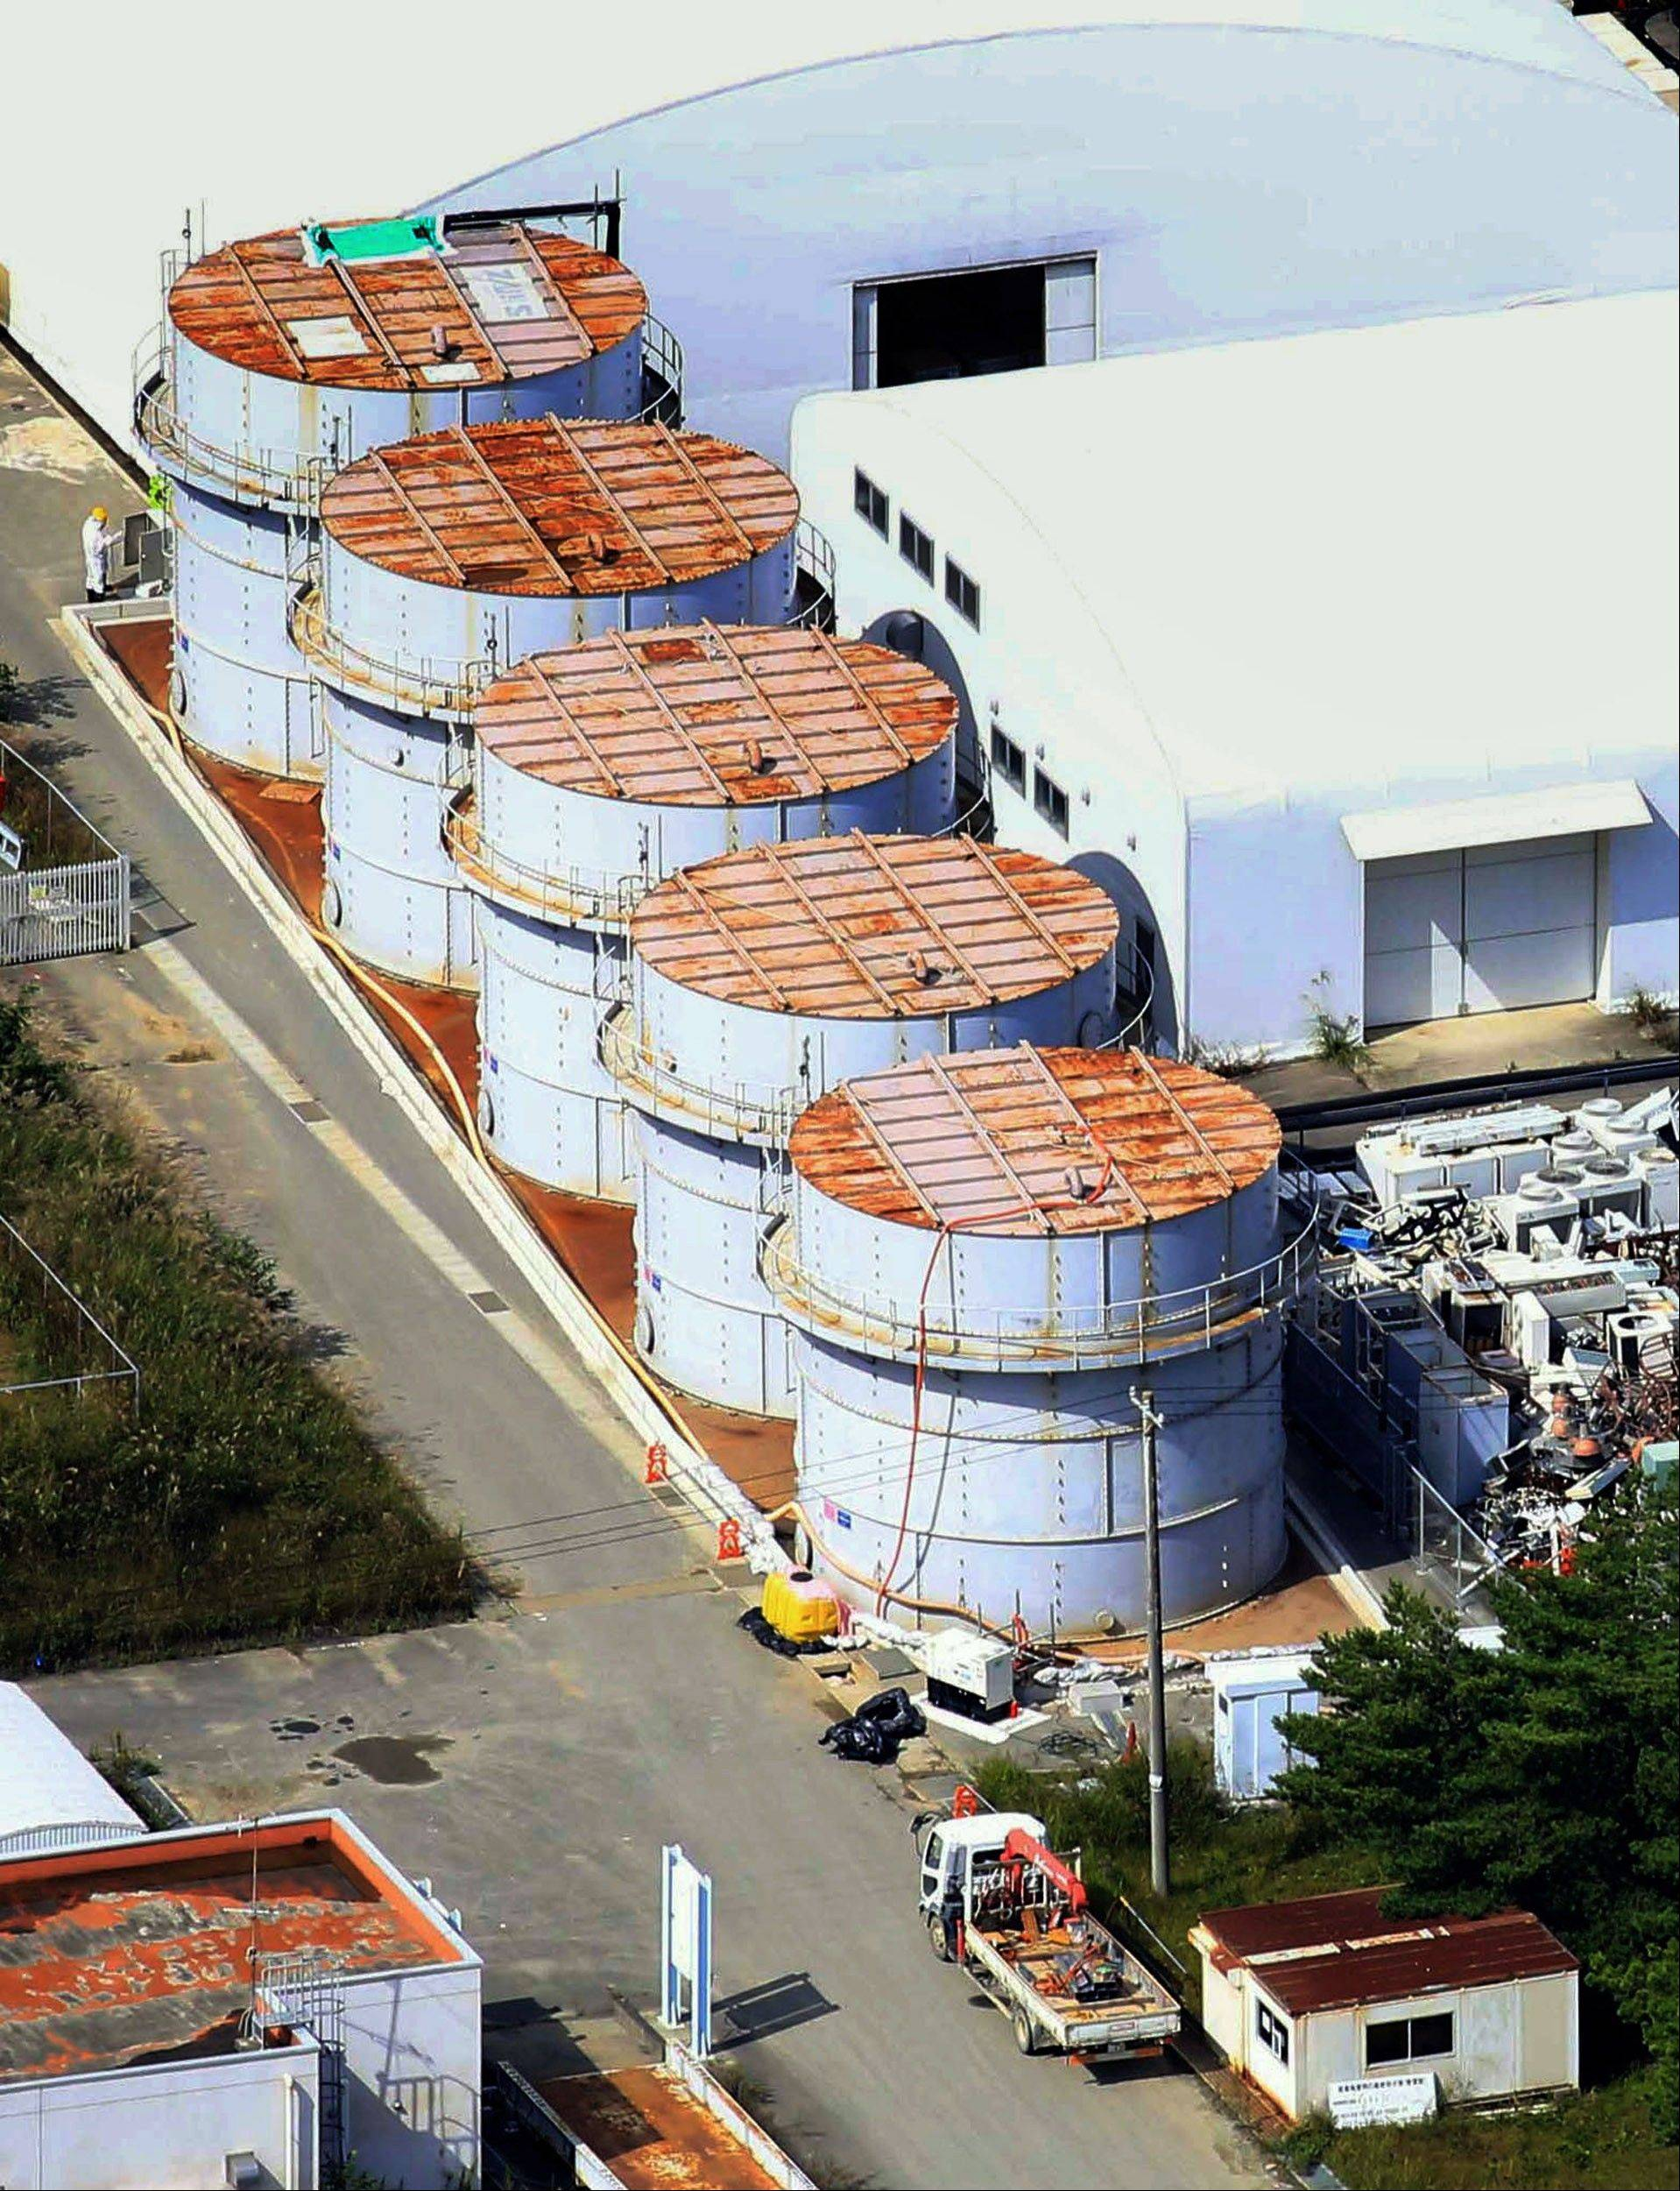 The storage tank, bottom, which workers detected the water dripping from the top, at the Fukushima Dai-ichi nuclear plant at Okuma town in Japan. The operator of the Fukushima plant has ordered workers near the coast to move to higher ground.